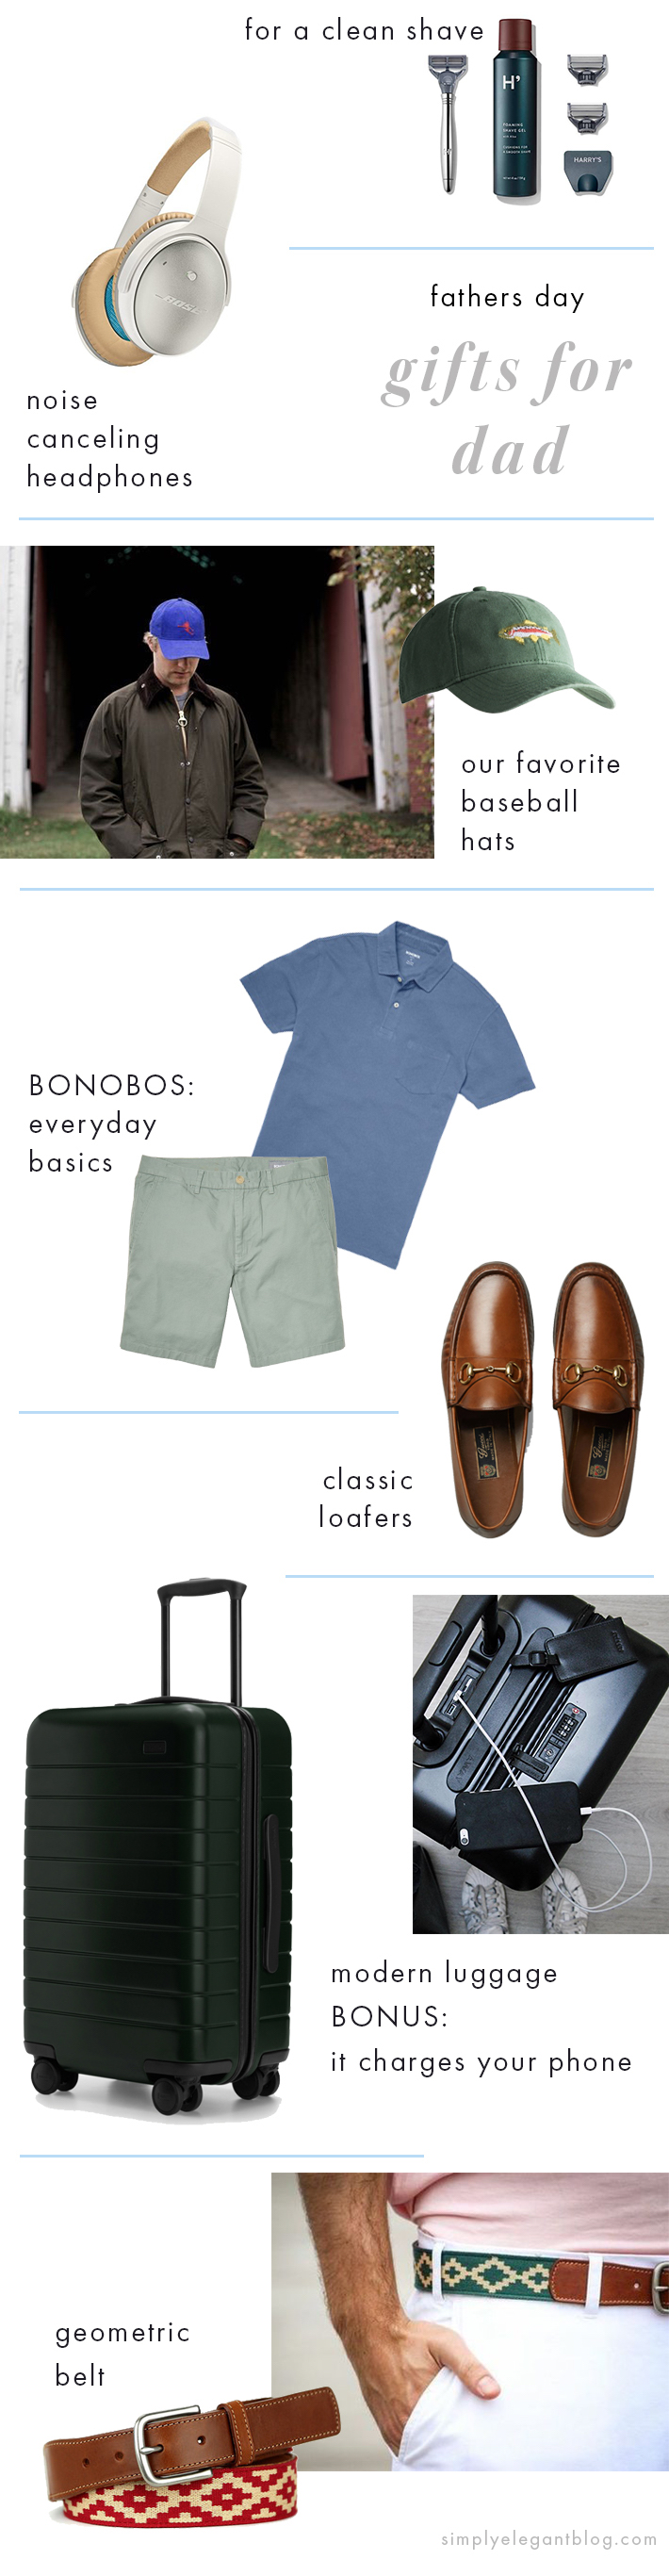 fathers day gift ideas - away suitcase, harding lane hat, la matera belt